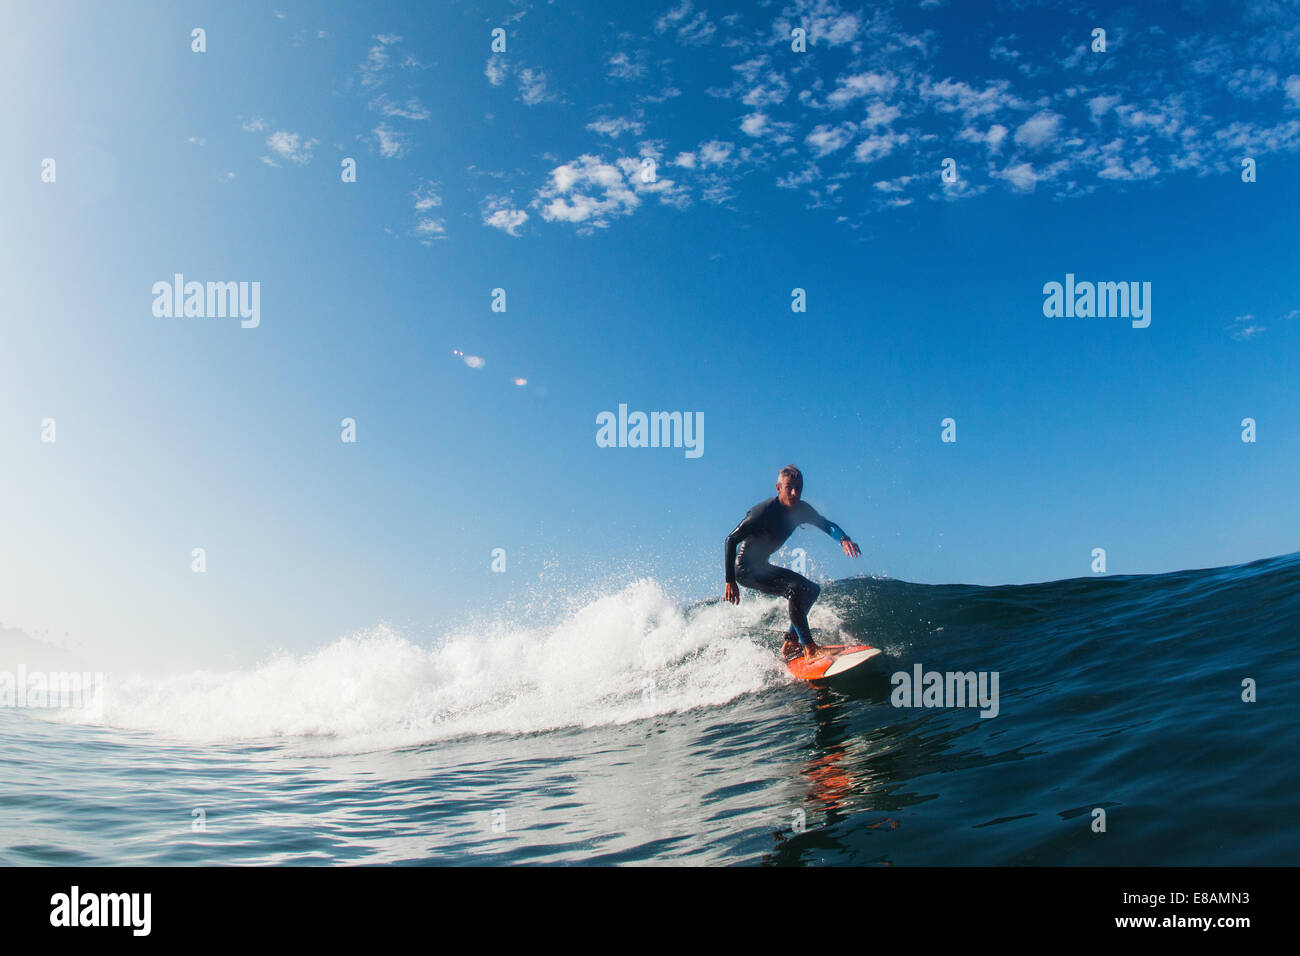 Mid adult man surfing wave, Leucadia, California, USA Photo Stock